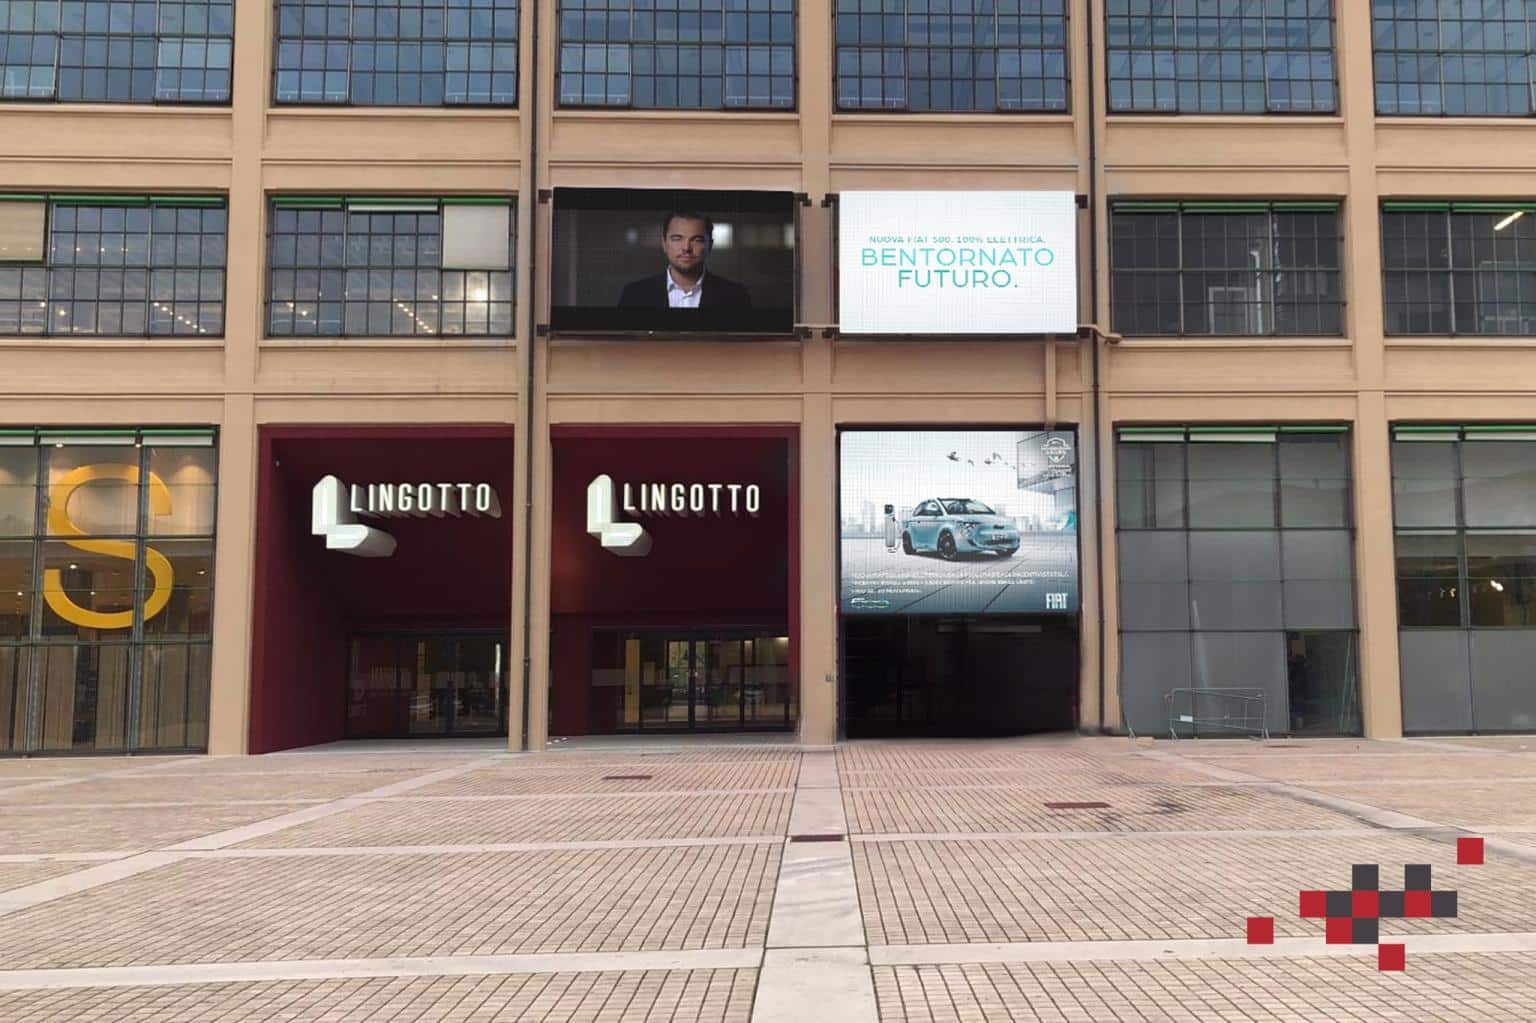 Articolo - Lingotto - Marketing automobilistico